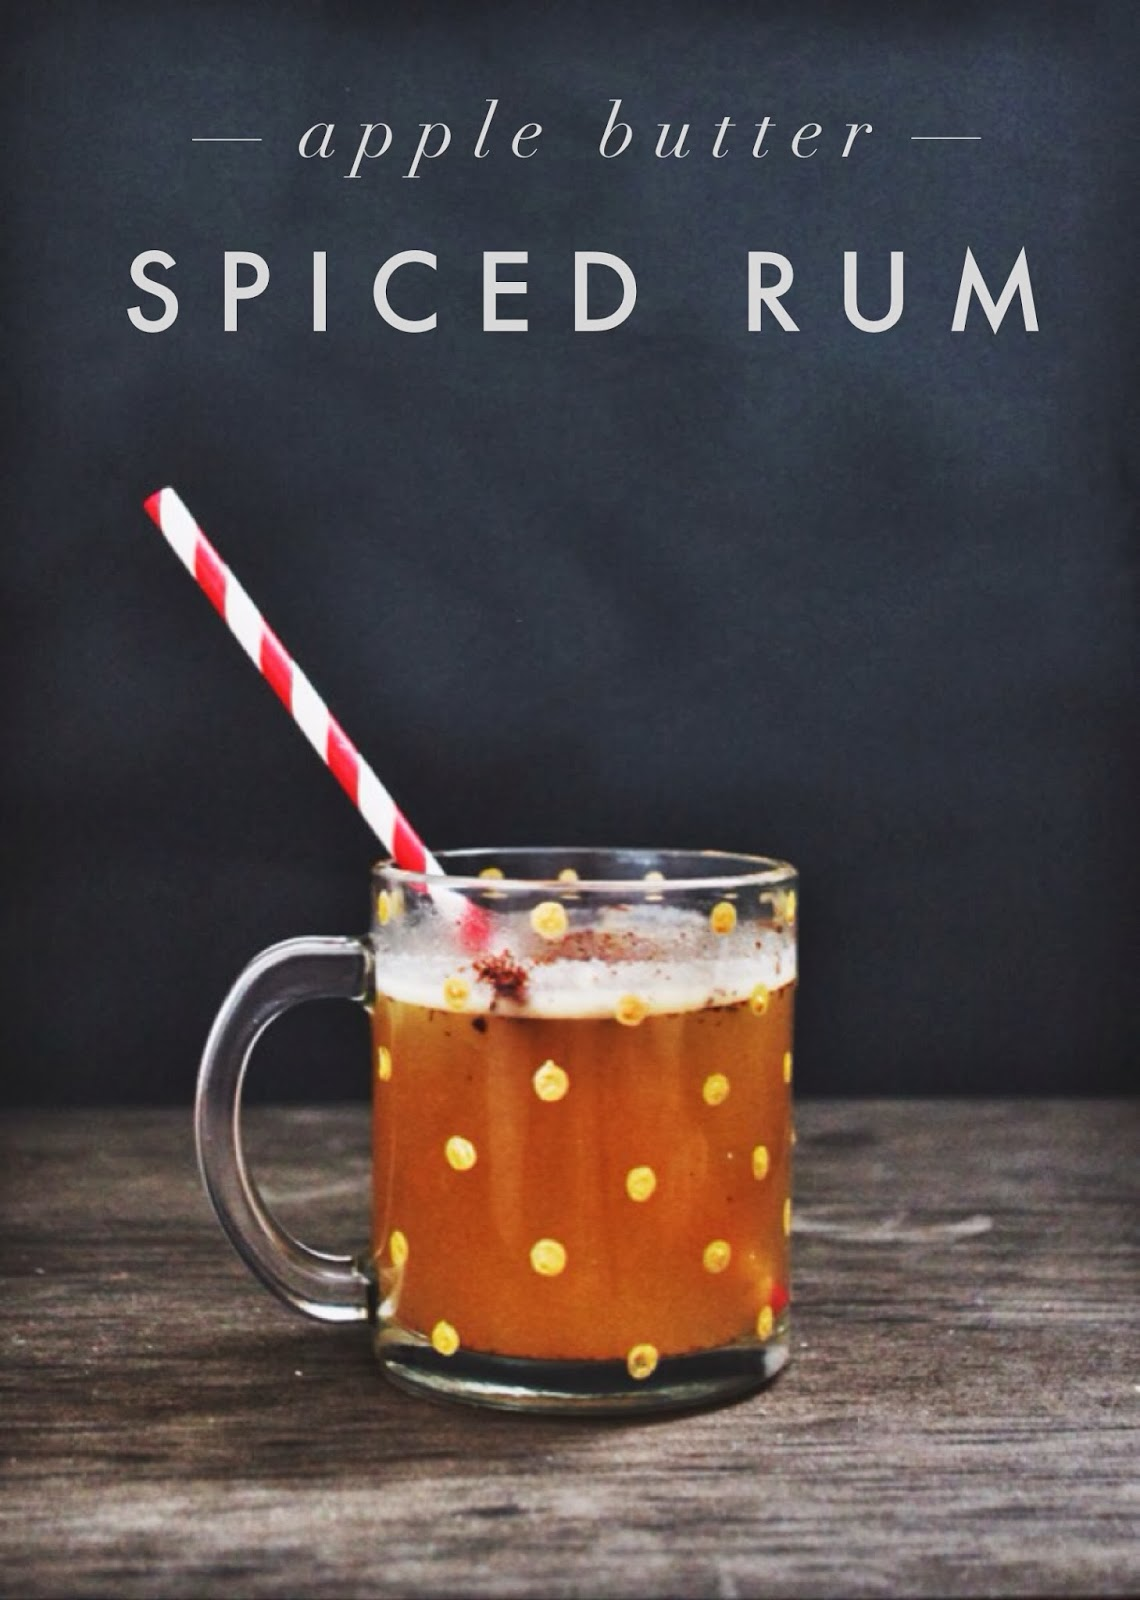 radical possibility: DRINK UP - HOT APPLE BUTTER SPICED RUM